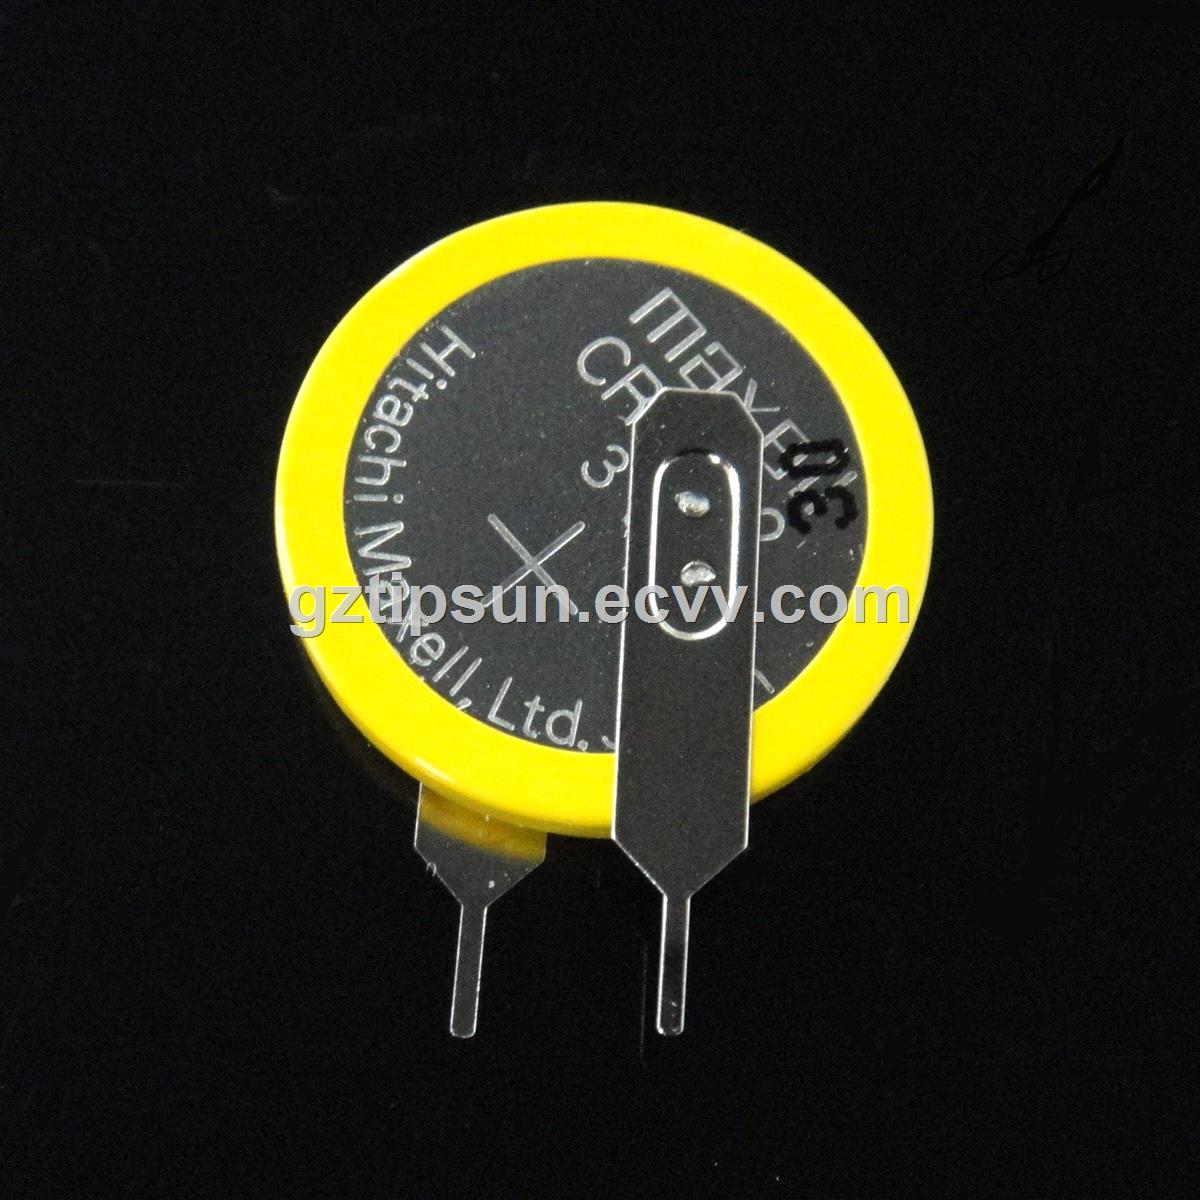 3v Lithium Button Cell Maxell Cr2032 Battery With Solder